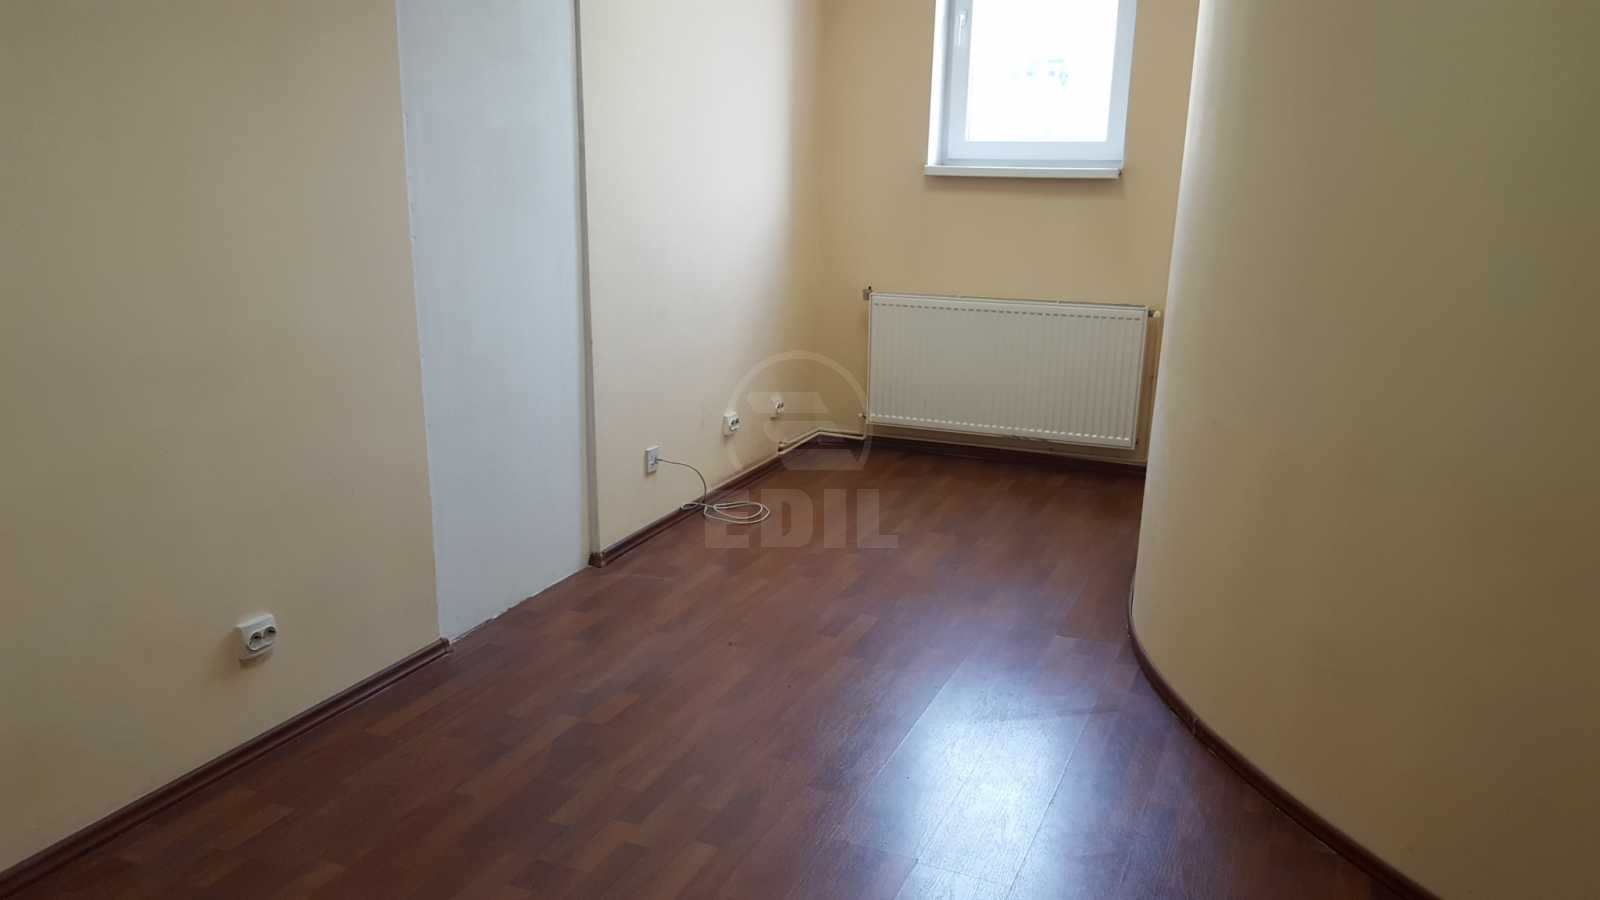 Office for rent 4 rooms, BICJ288747-4